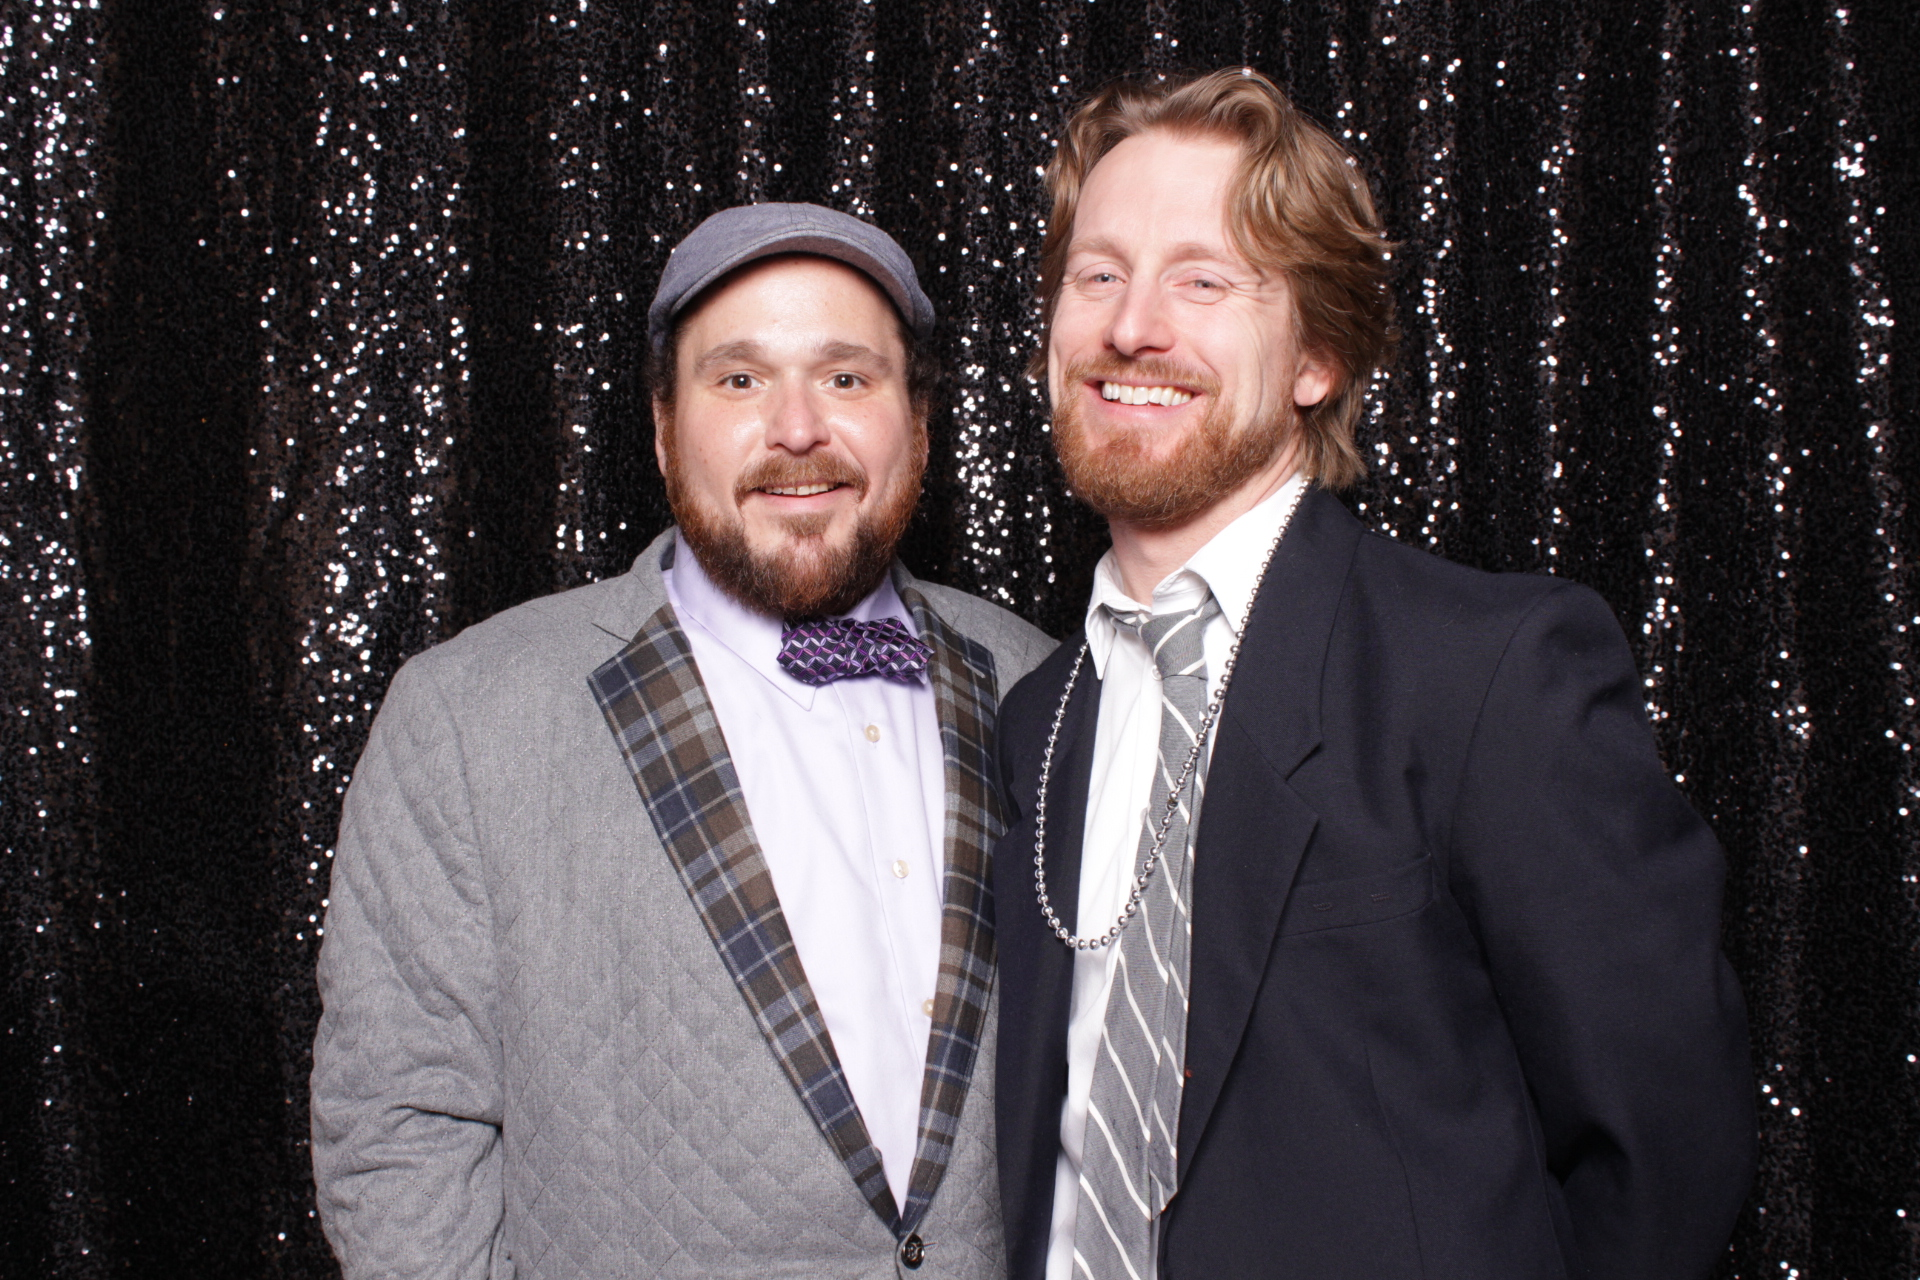 Minneapolis_birthday_party_photo_booth_rentals (21).jpg